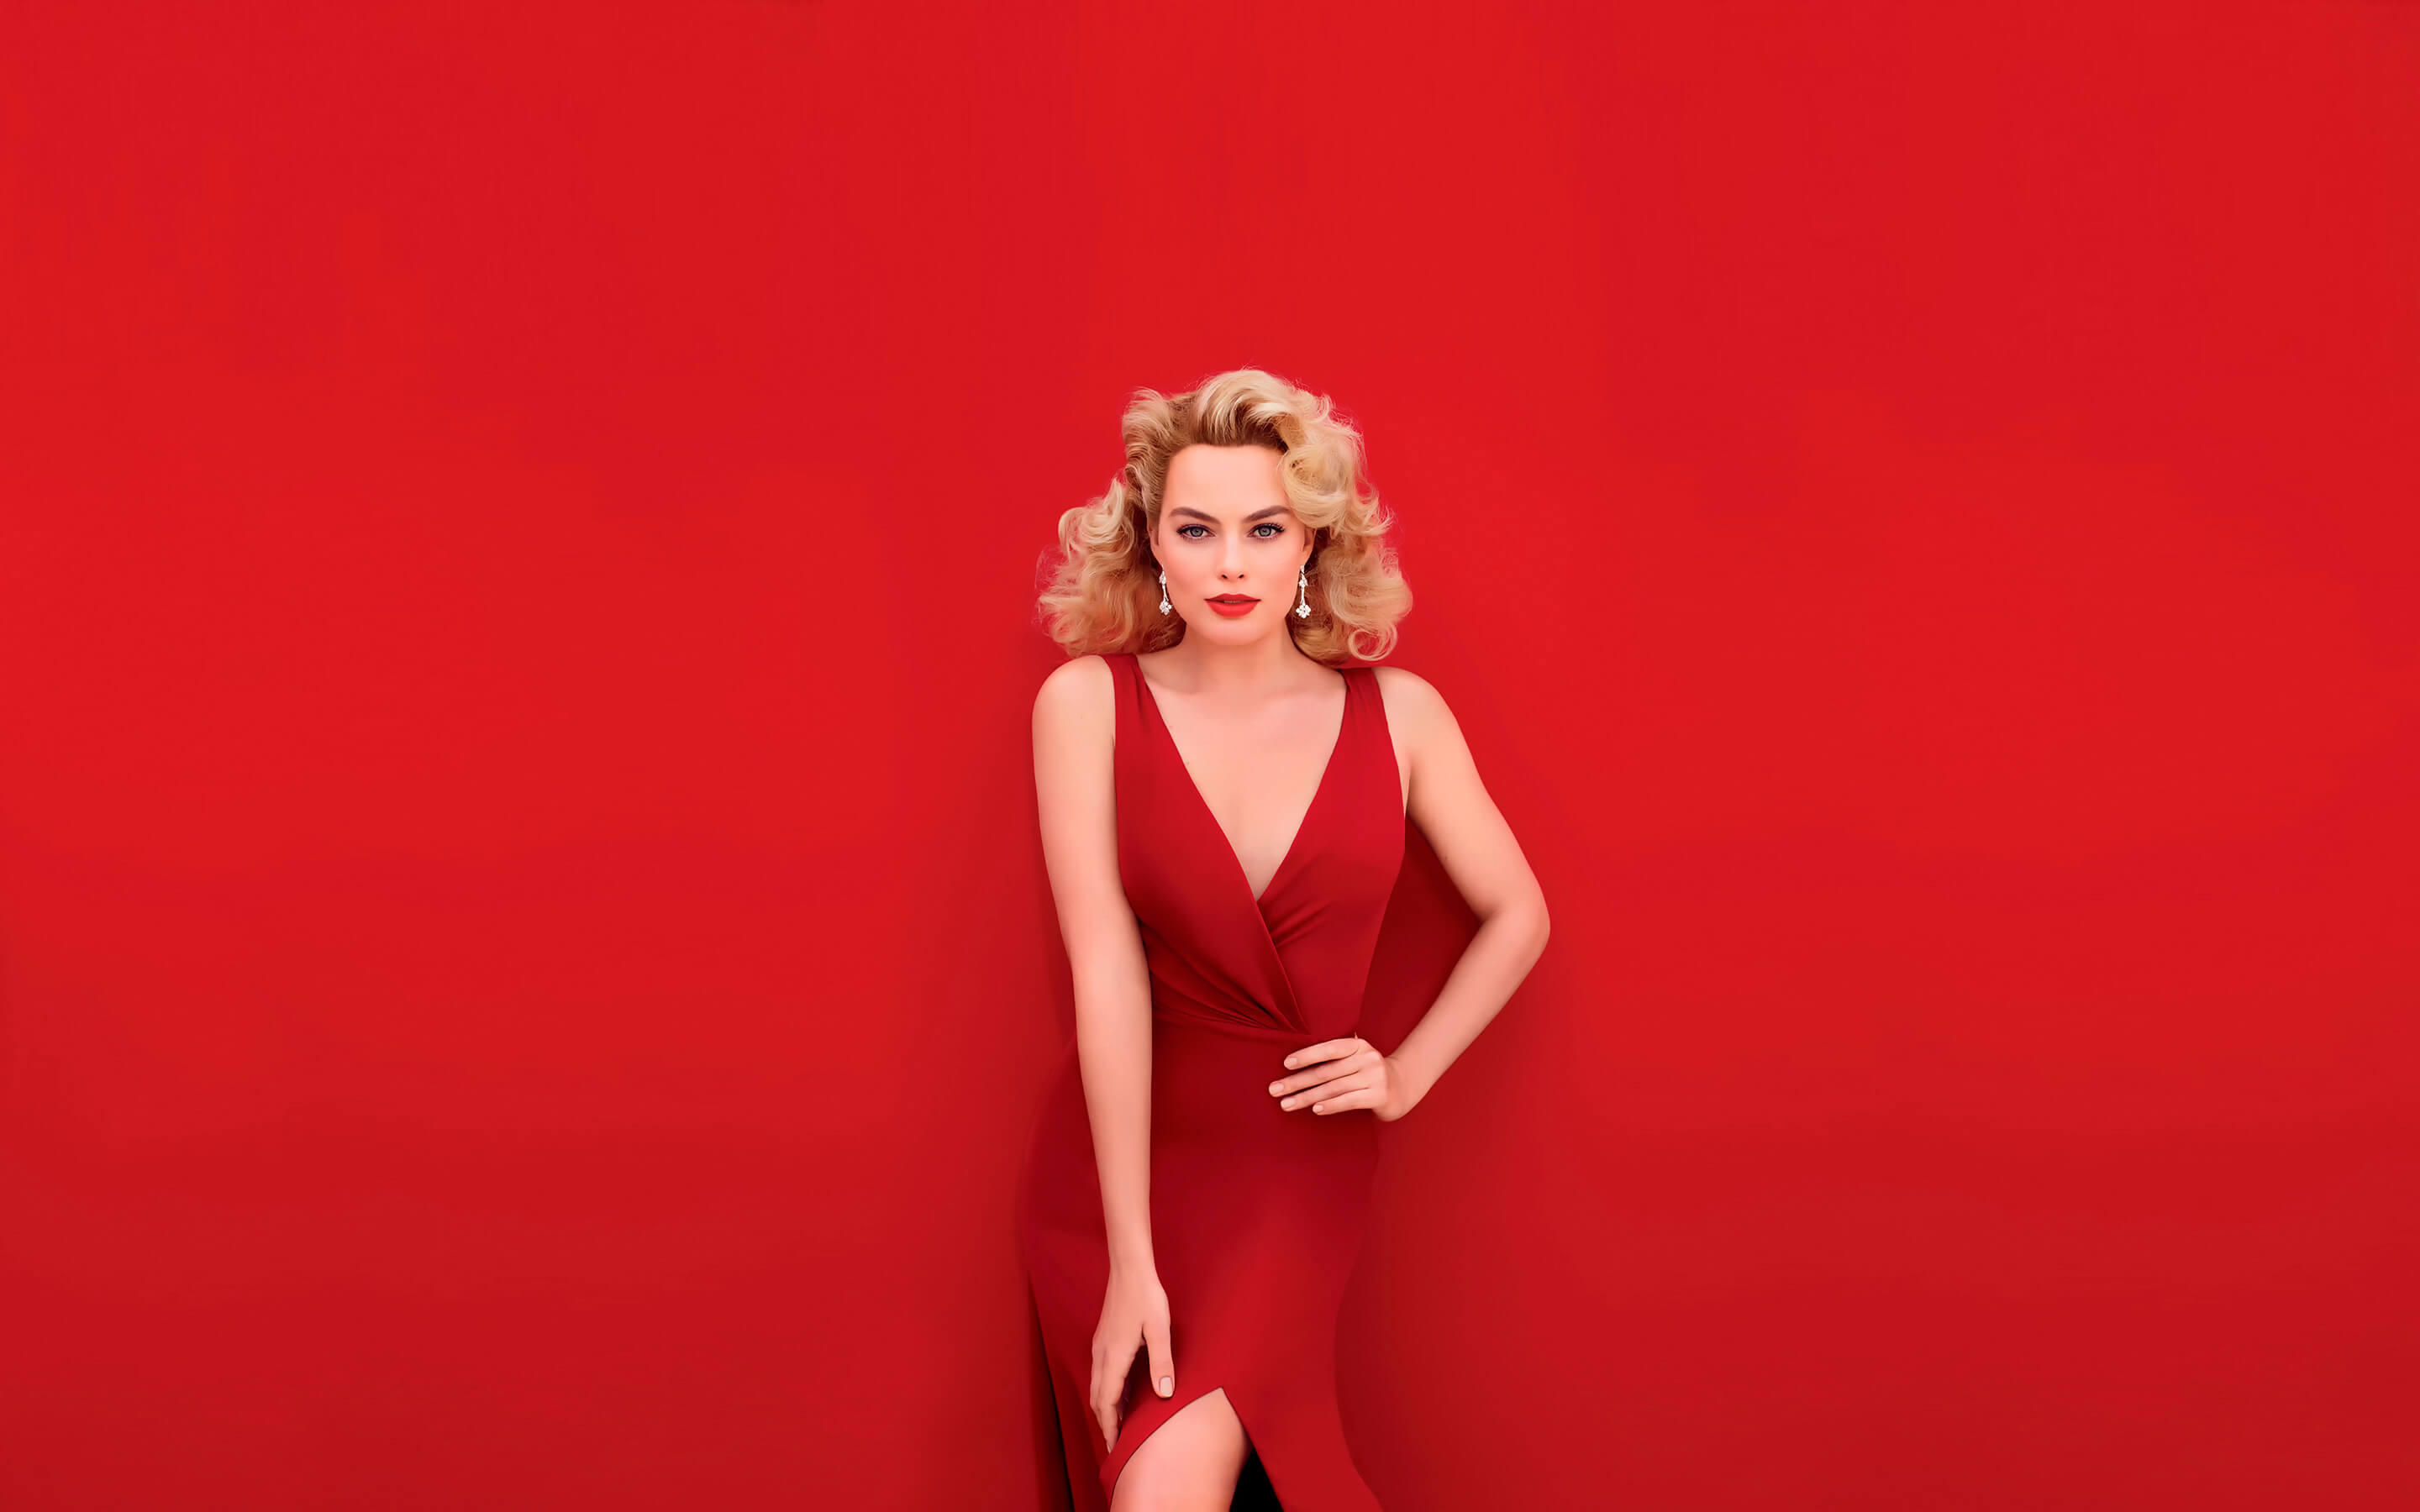 54488ac7c1 2048x1152 Margot Robbie In Red Dress 2048x1152 Resolution HD 4k ...